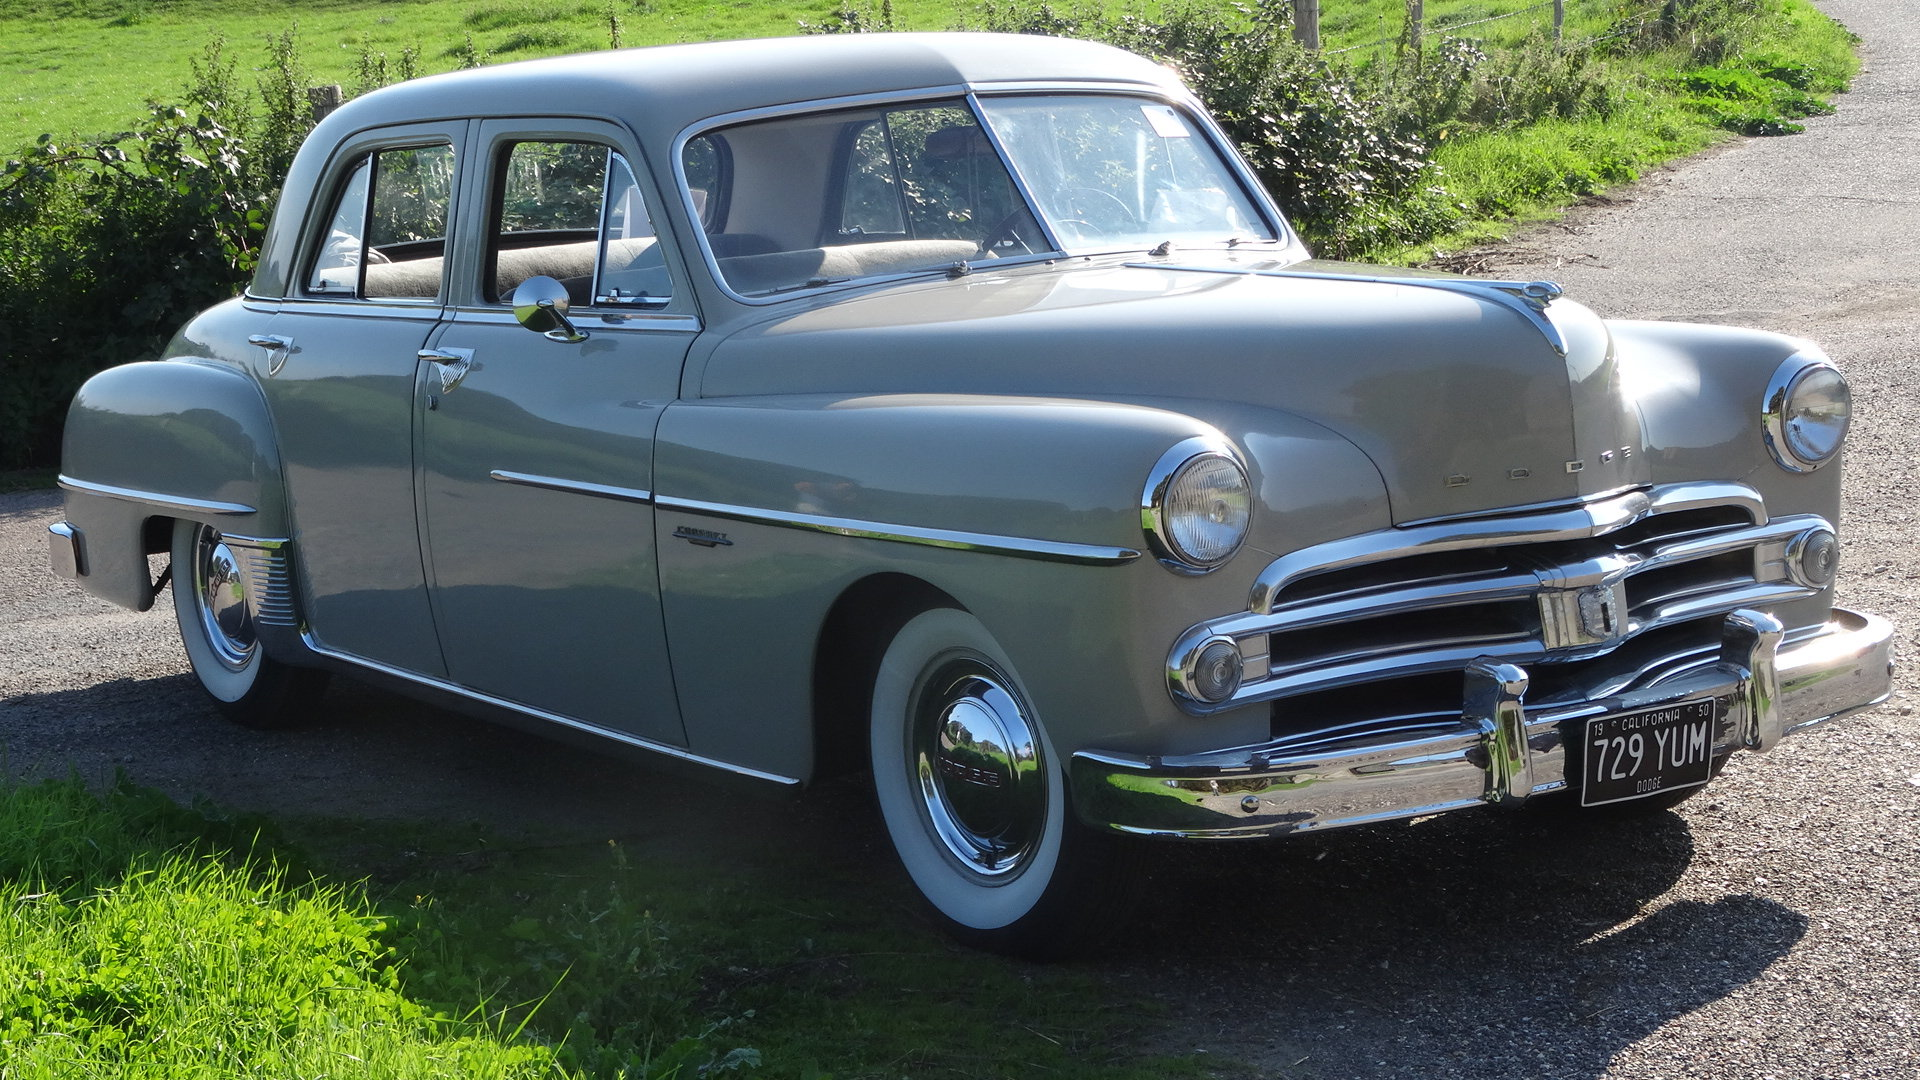 Dodge Coronet 1950 For Sale | Car And Classic1950s Cars For Sale